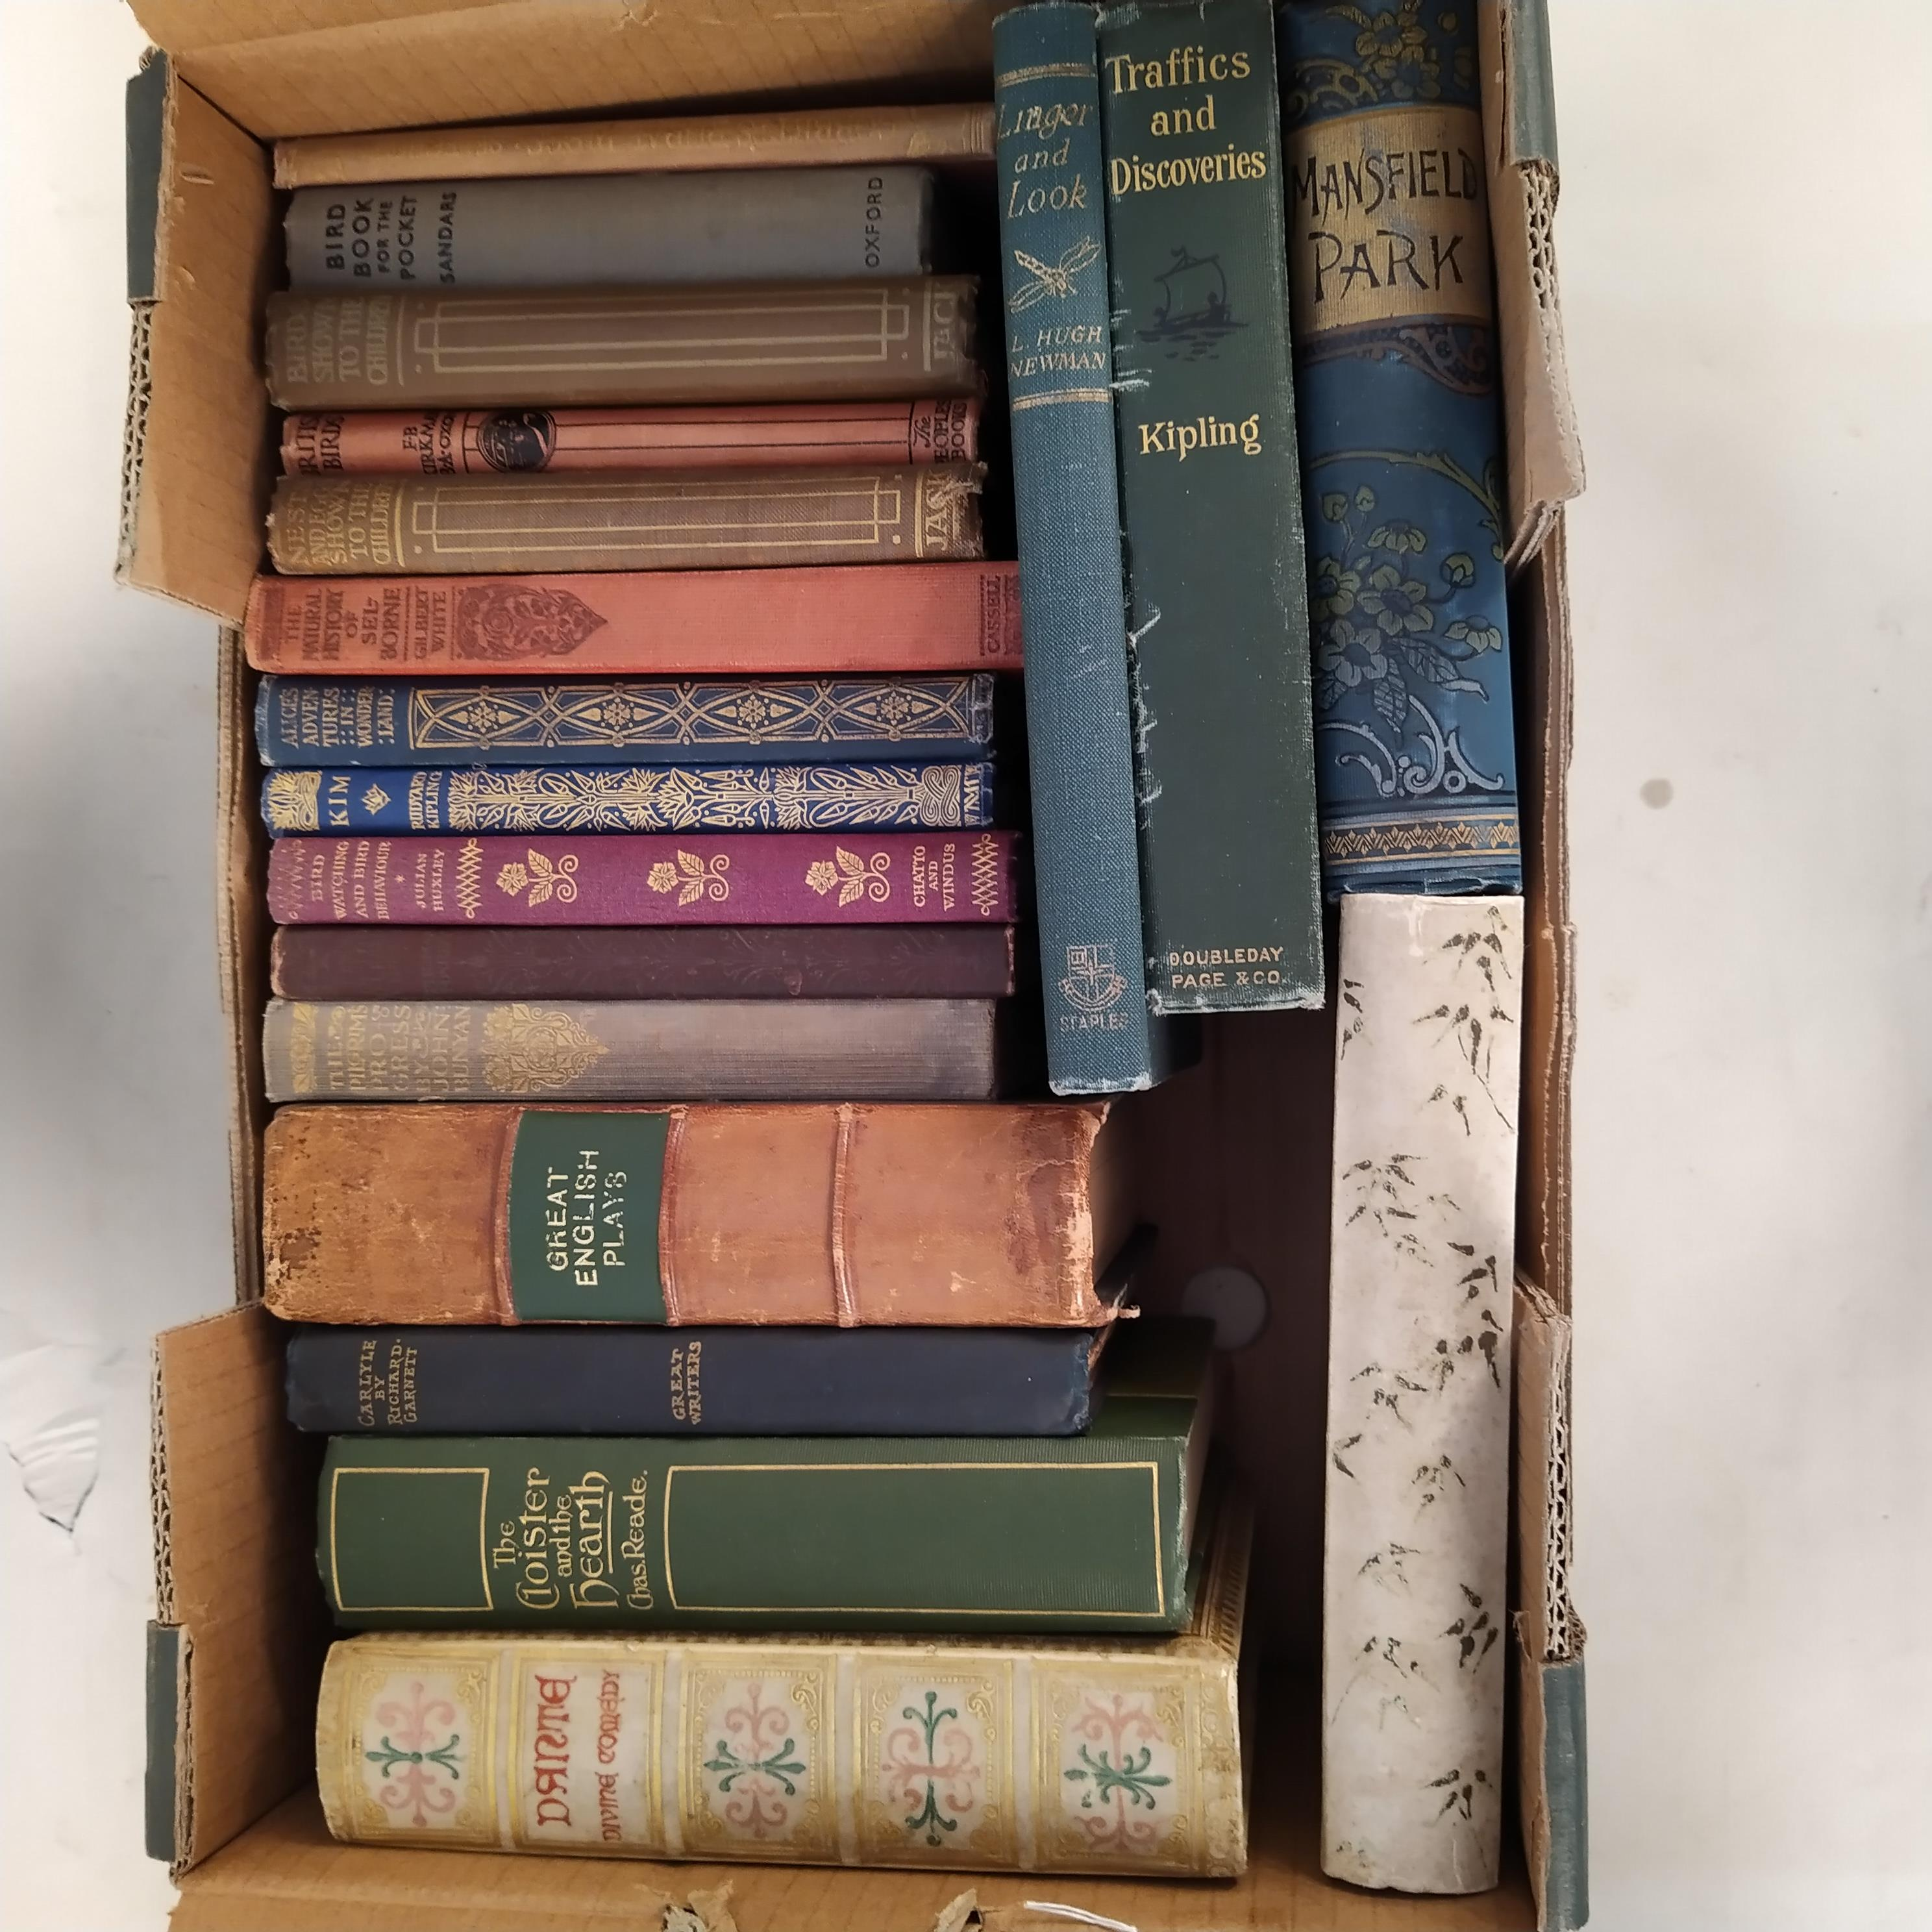 A selection of late Victorian/early 20th Century books including titles on birds, - Image 2 of 3